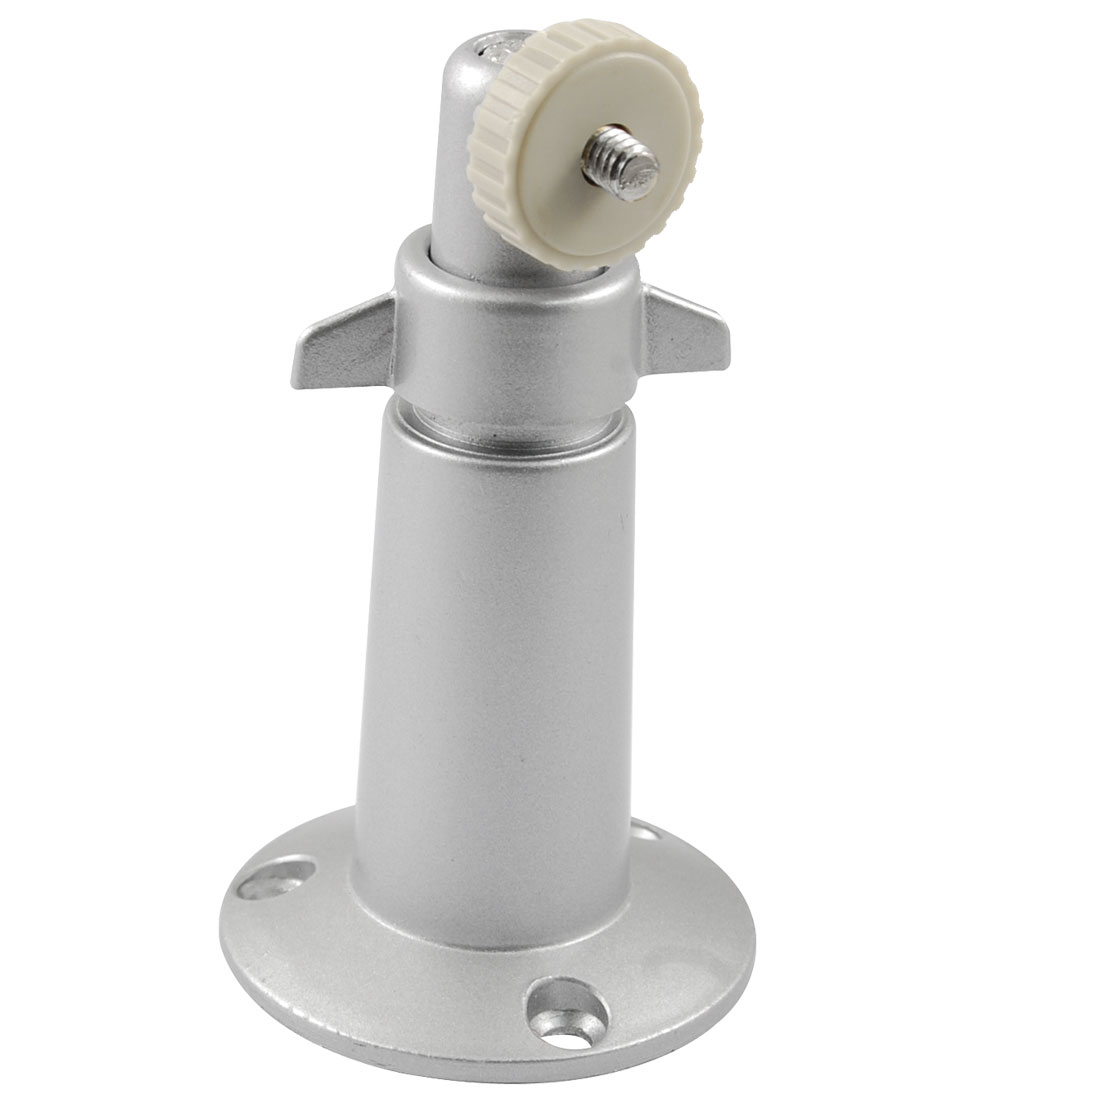 1/4 Inch Thread Metal CCTV Security Camera Holder Wall Mount Bracket Silver Tone